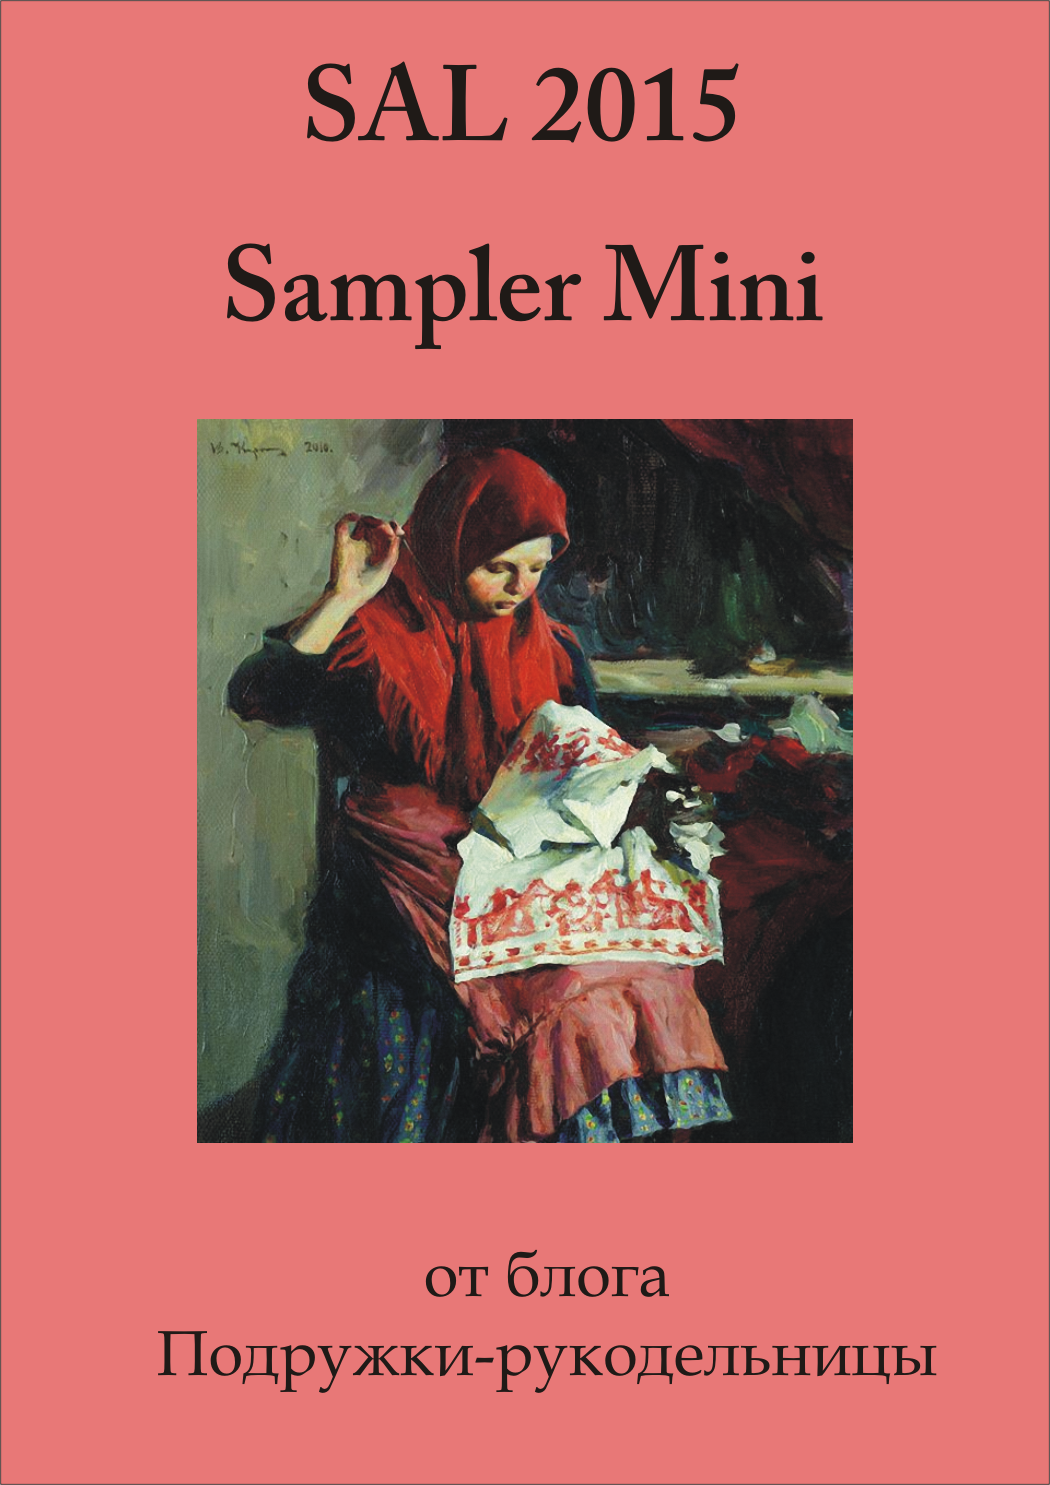 SAL 2015 Sampler Mini